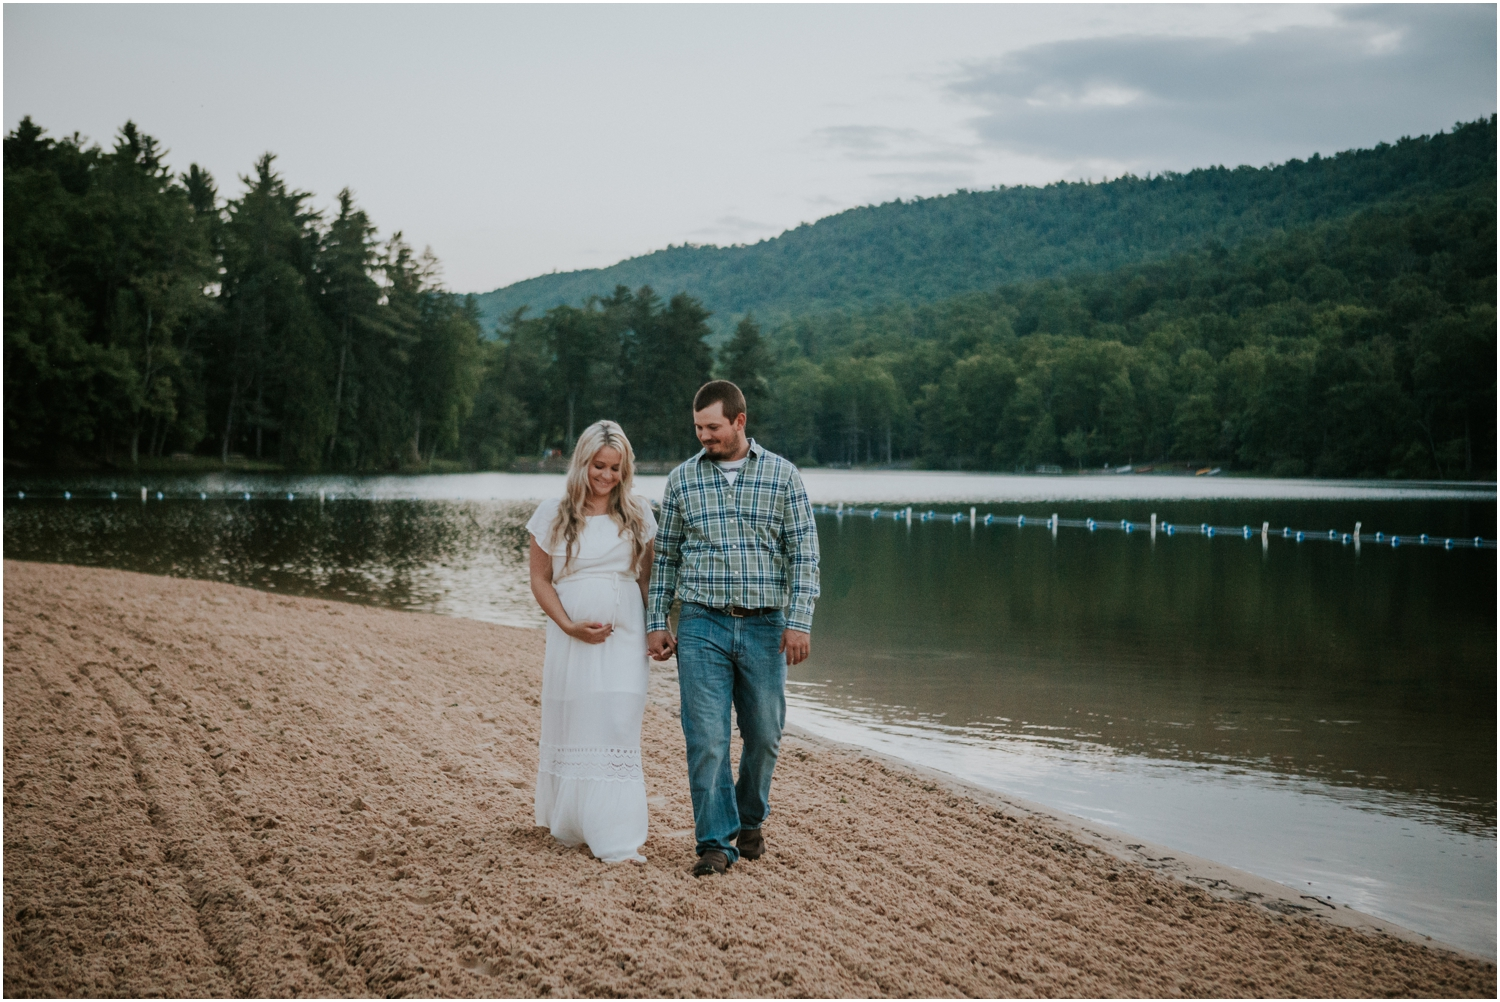 katy-sergent-photography-johnson-city-tennessee-northest-tn-elopement-intimate-wedding-photographer-outdoors-adventurous-couples-adventure-lovers_0038.jpg